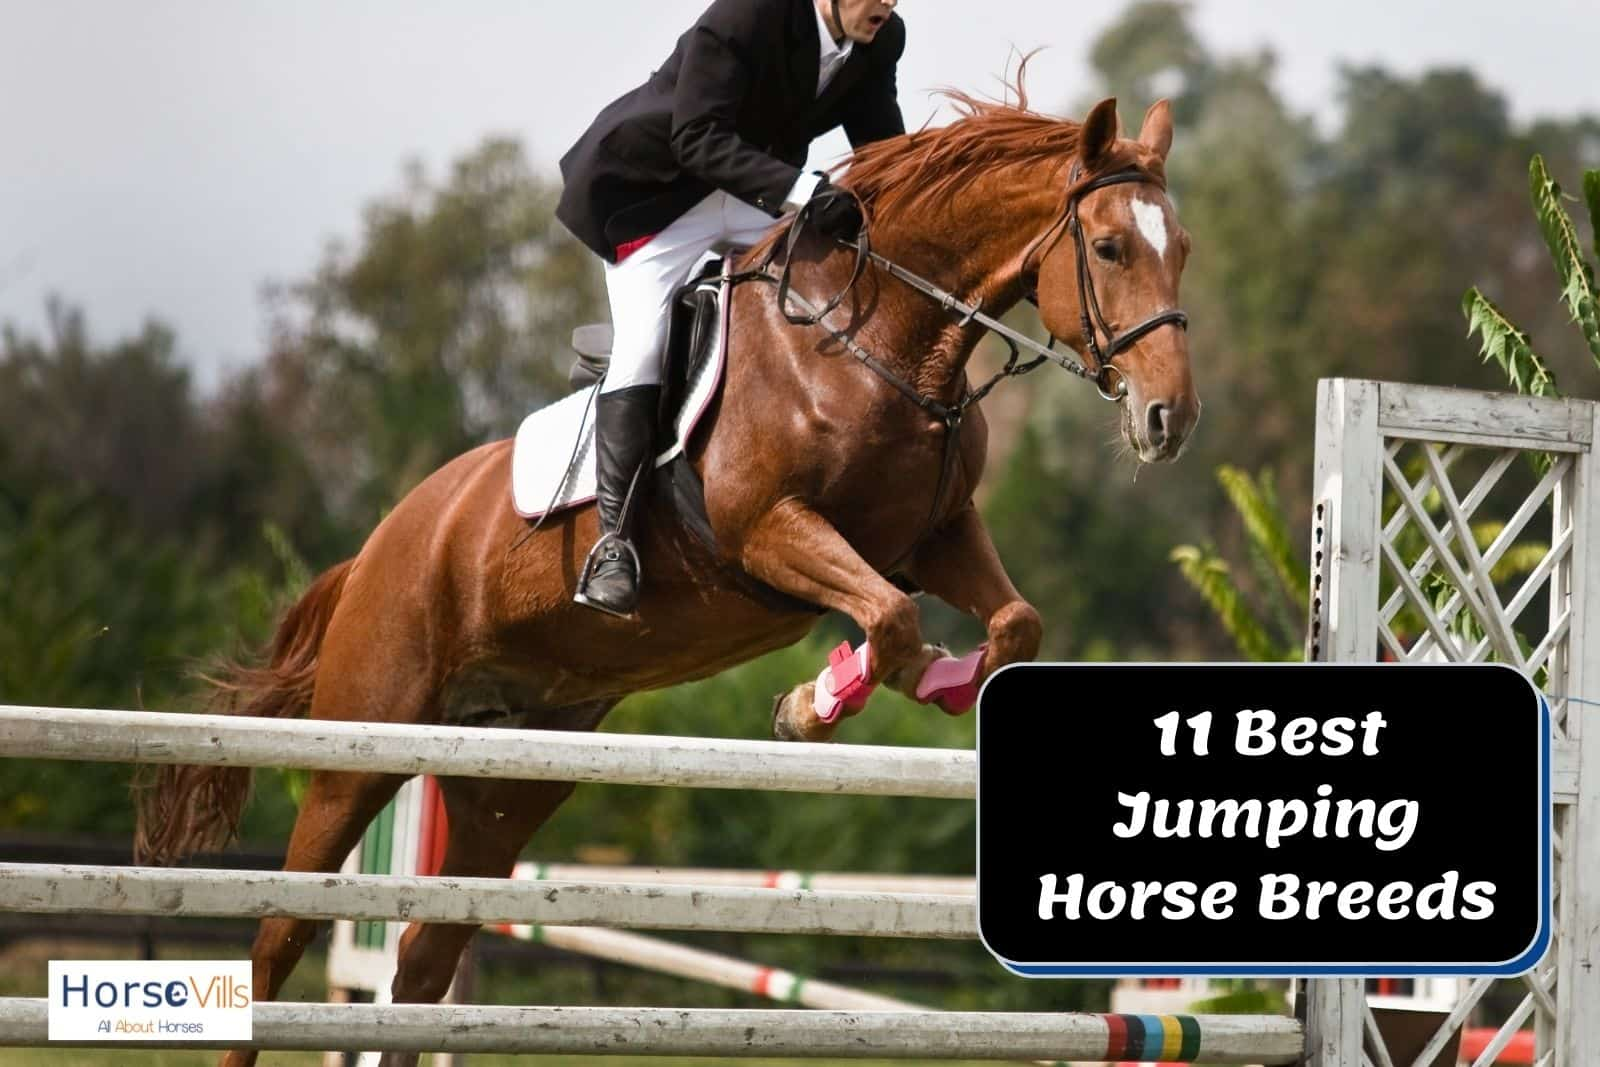 an equestrian riding one of the best jumping horses